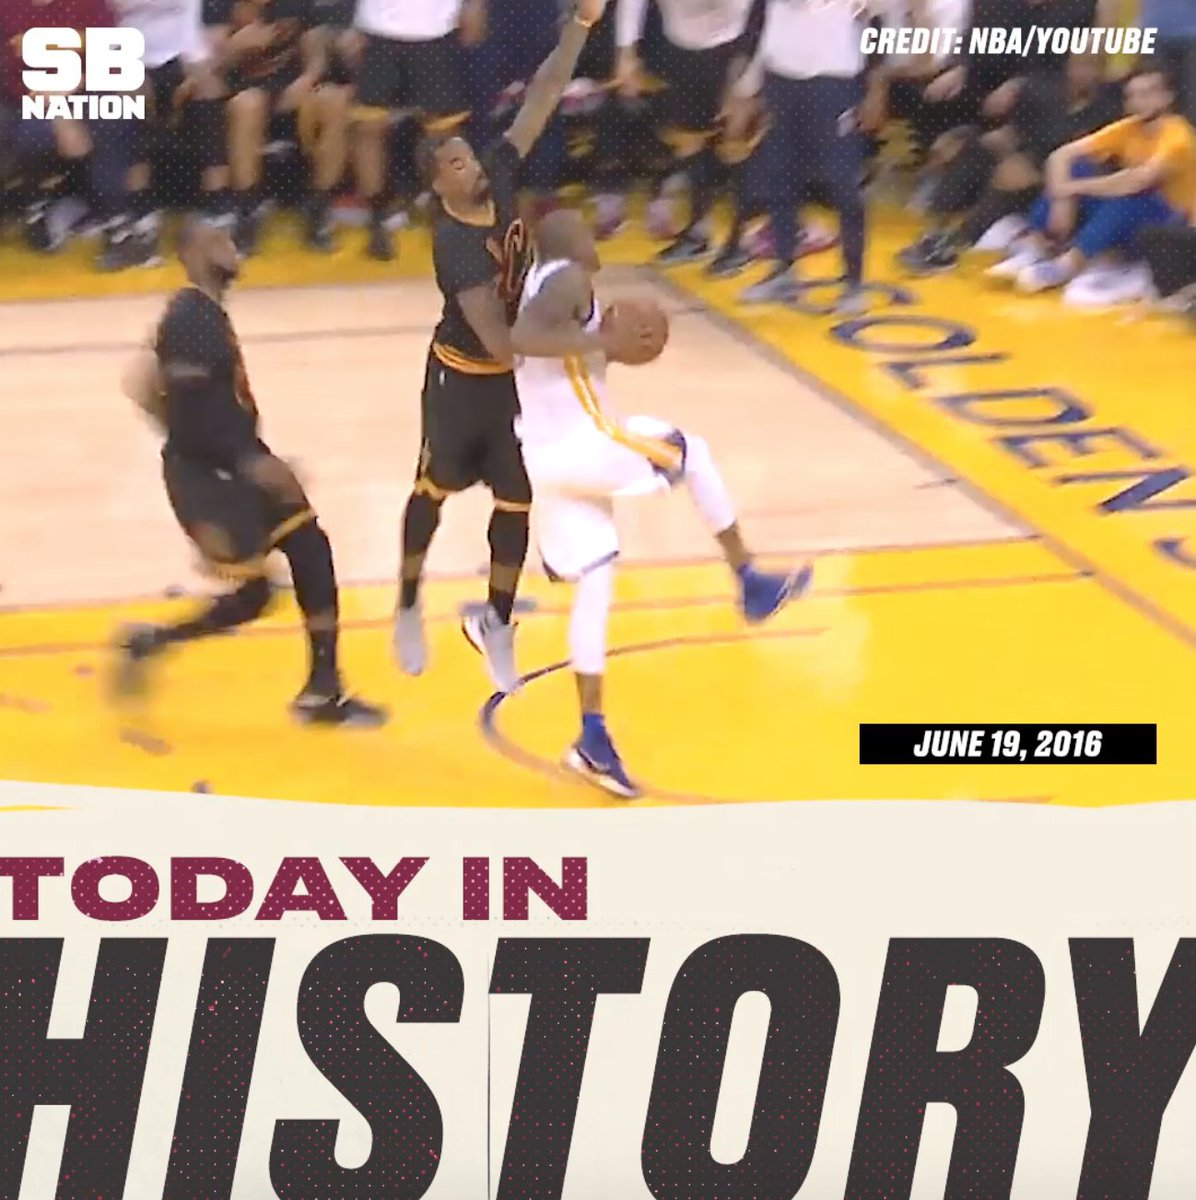 Two years ago today: LeBron James, Andre Iguodala, and the NBA Finals. You know the rest: